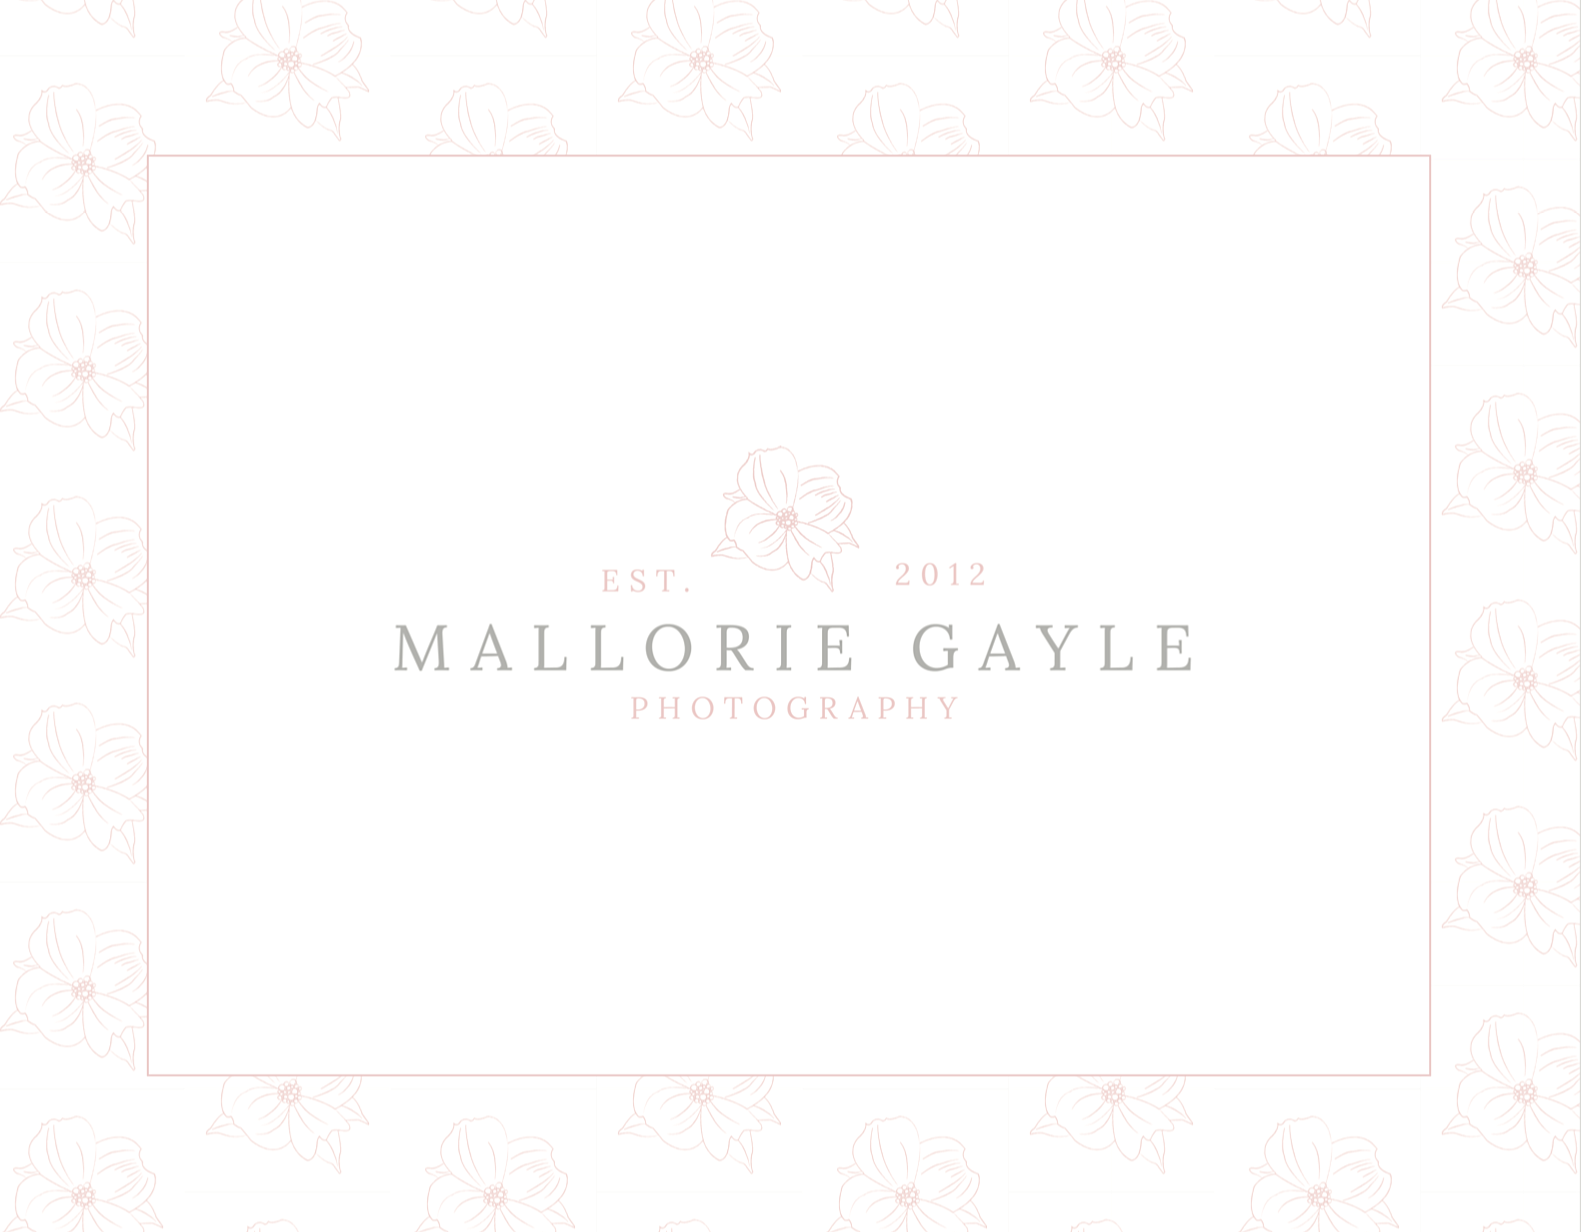 Mallorie Gayle Photography Branding Kindly by Kelsea